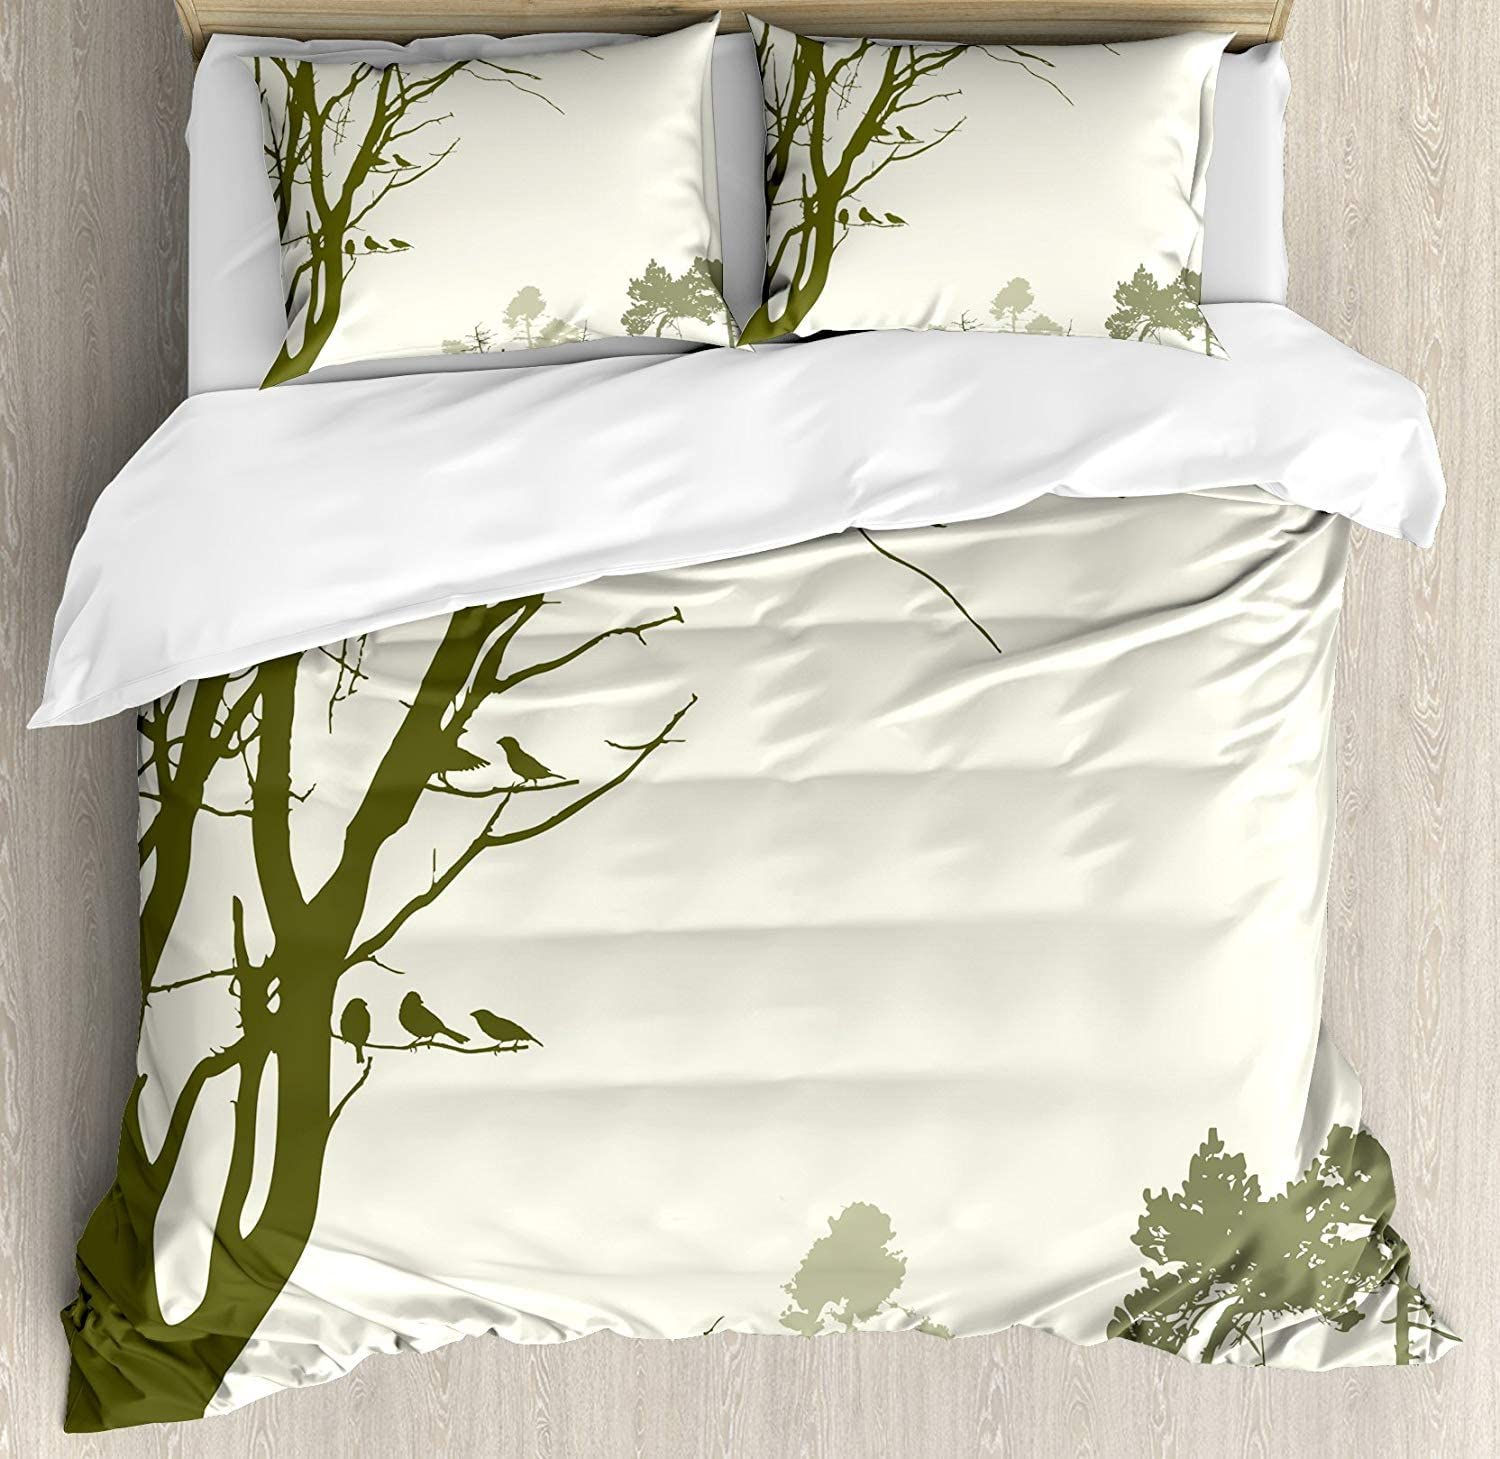 Forest Bedding Sets Nature Theme The Panorama Of A Forest Pattern Birds On Tree Branches Print 4 Piece Duvet Cover Set Quilt Bedspread For Childrens Kids Teens Adults Olive Green Cream Twin Size Home